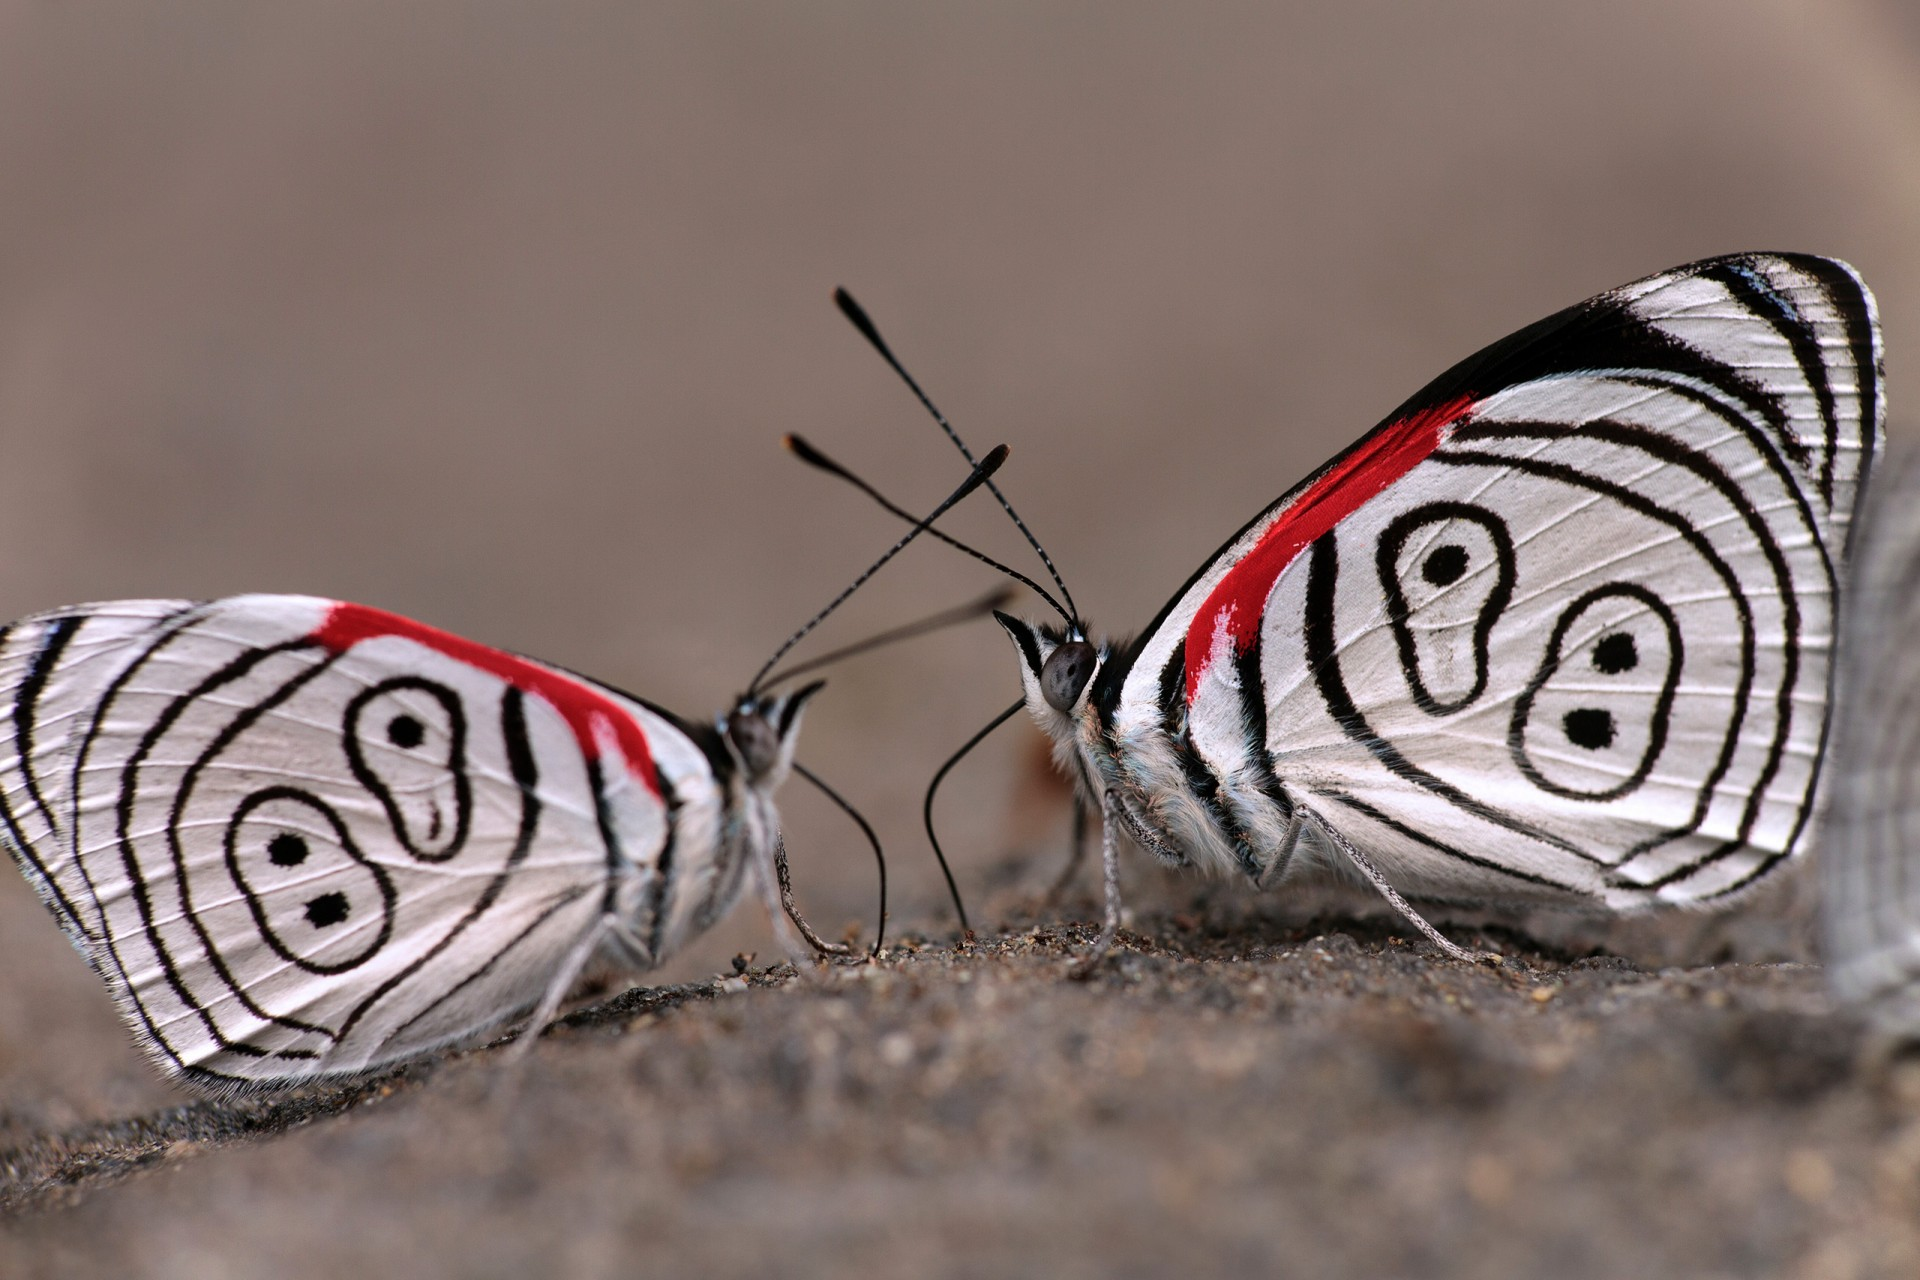 Insects Need Empathy